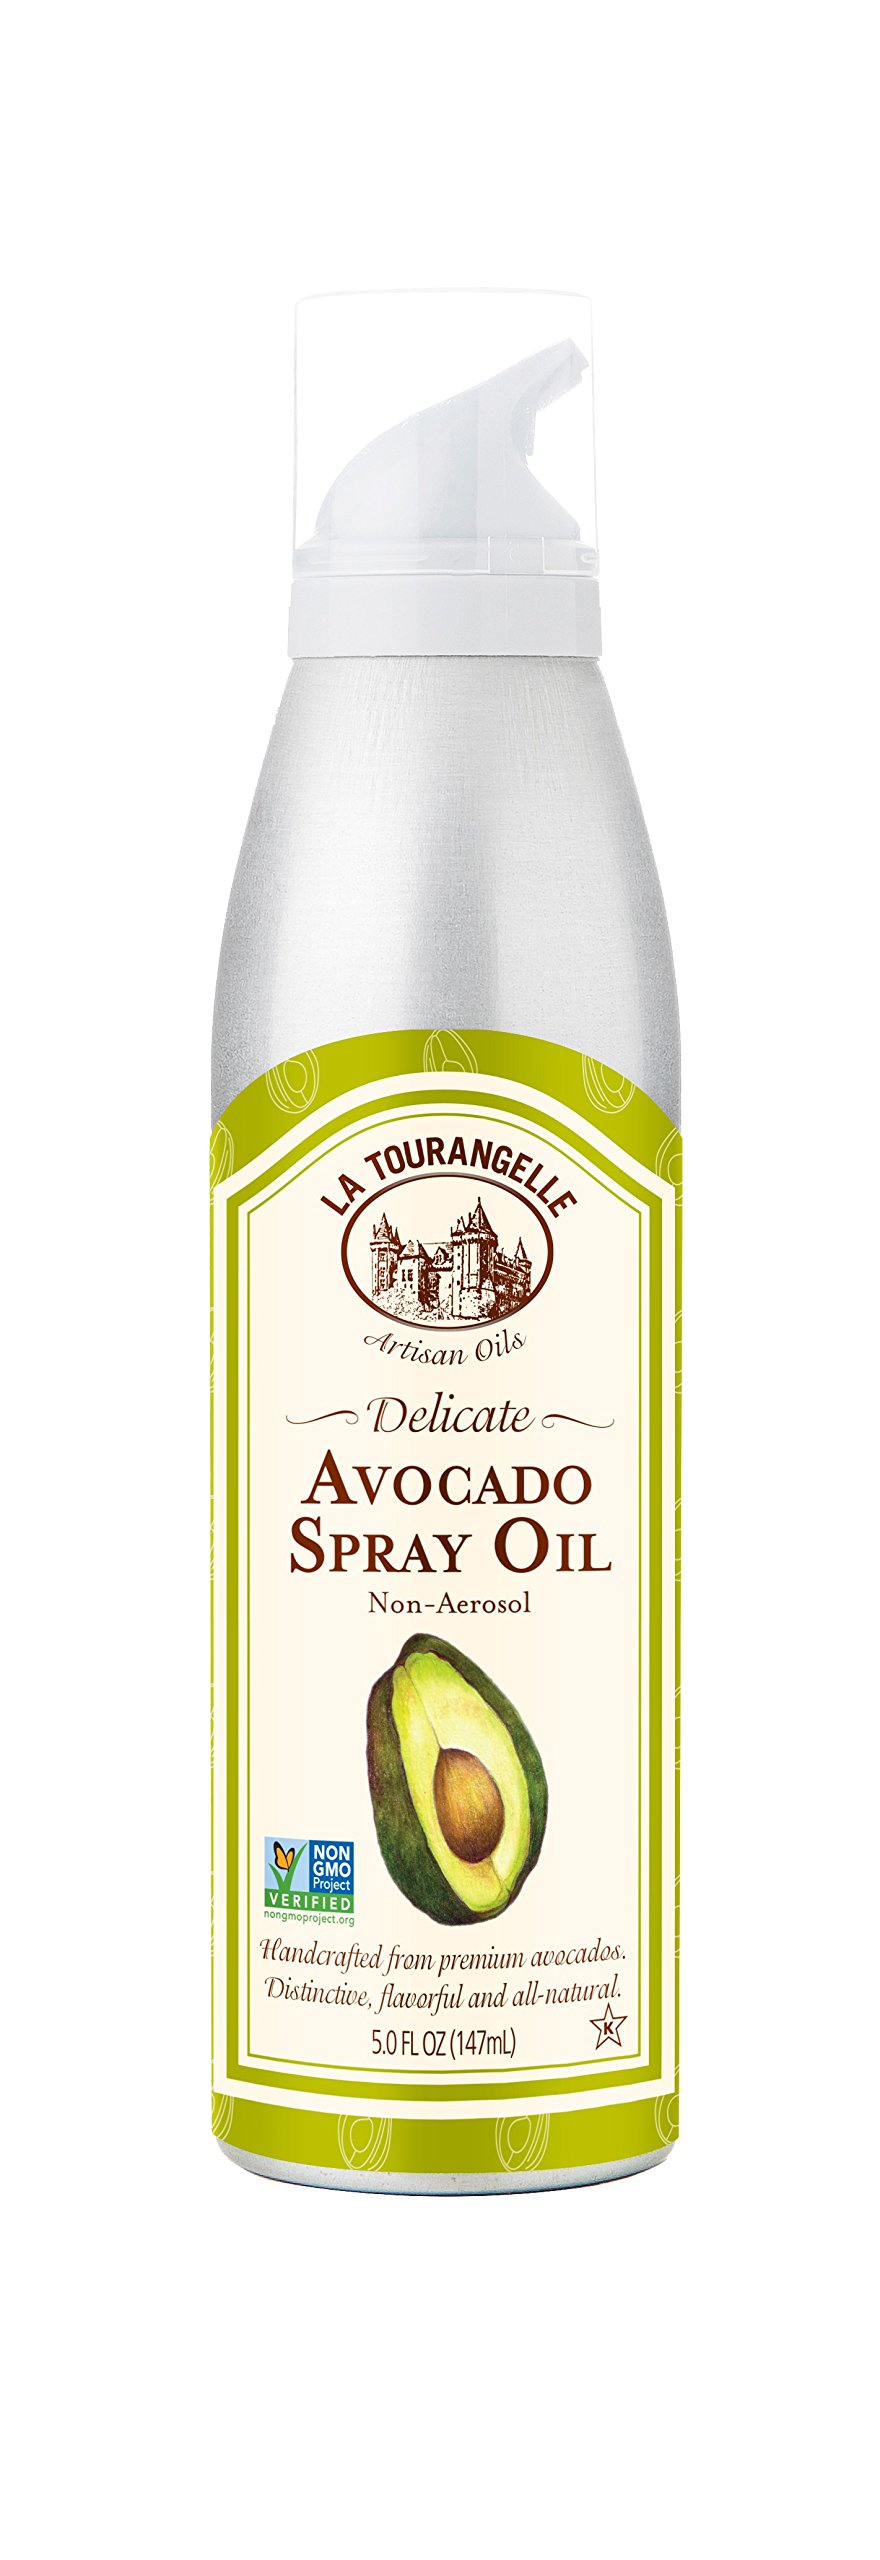 La Tourangelle Avocado Oil Spray 5 Fl. Oz, All-Natural, Artisanal, Great for Salads, Fruit, Fish or Vegetables, Great Buttery Flavor